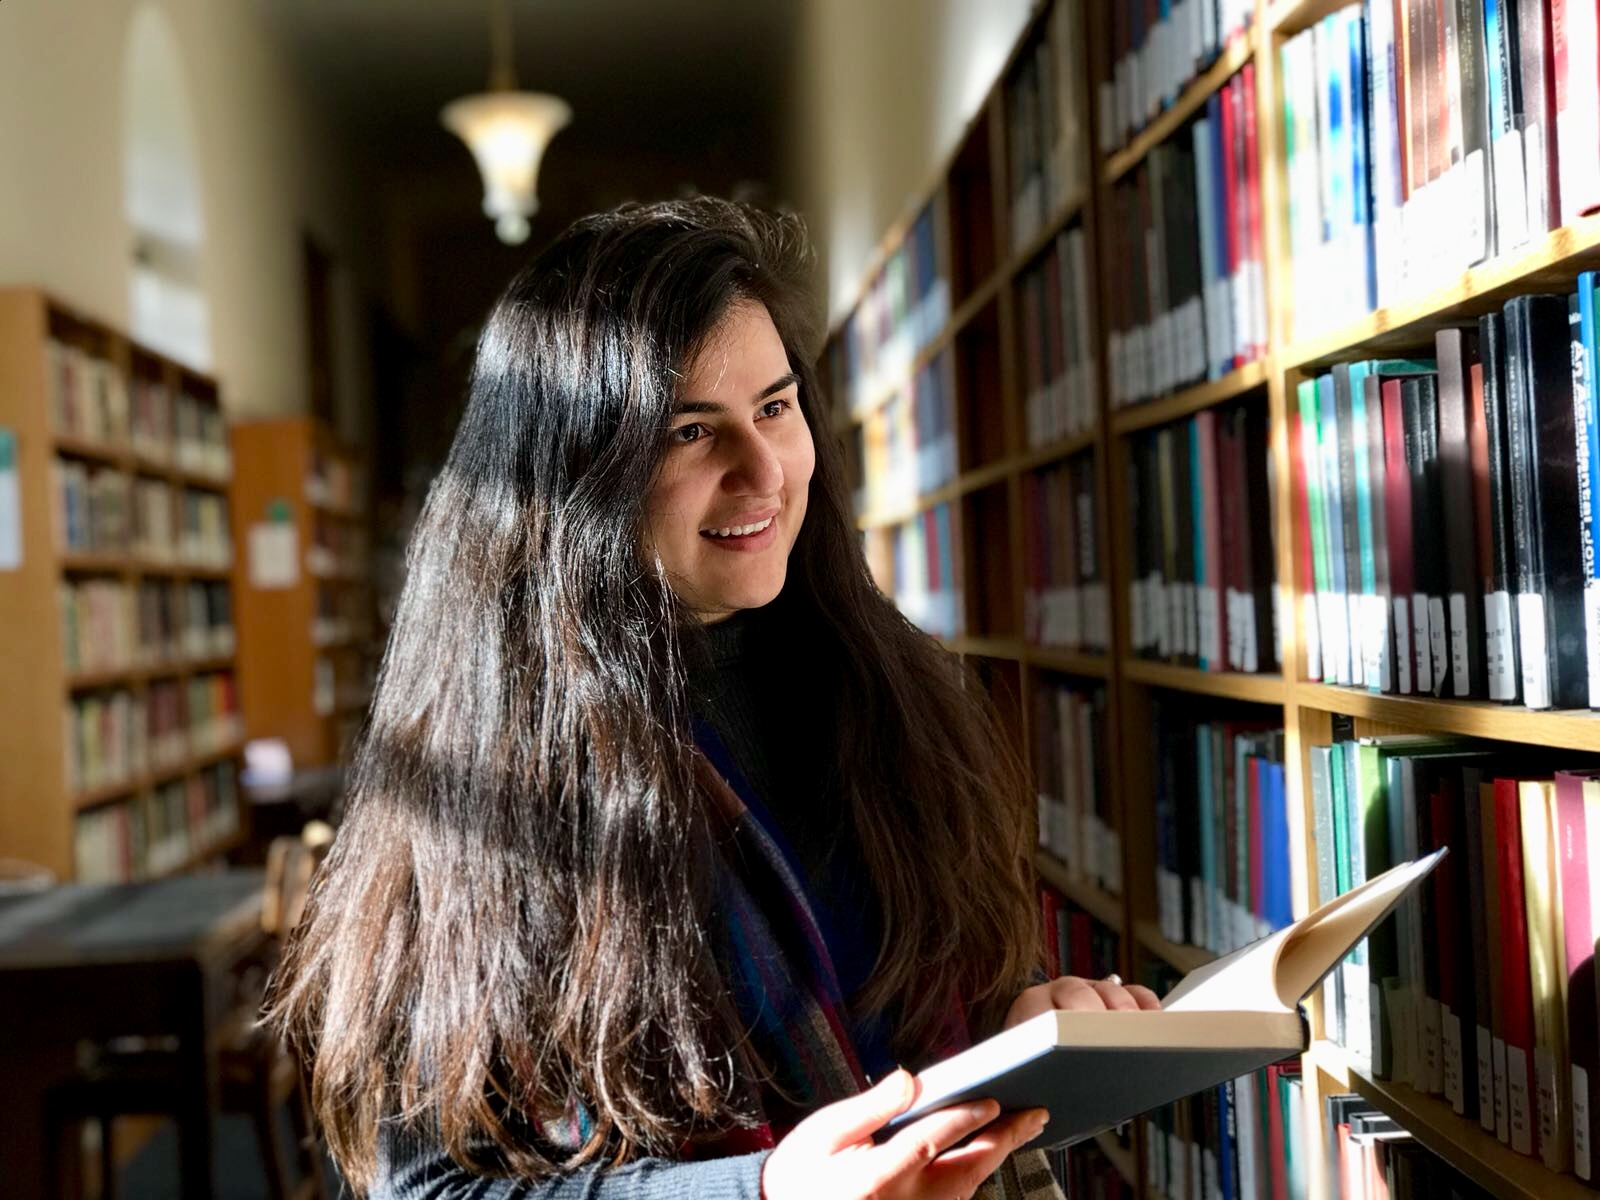 An interview with Rabia Nasimi Part II: Thoughts on Cambridge and Higher Education for Refugees